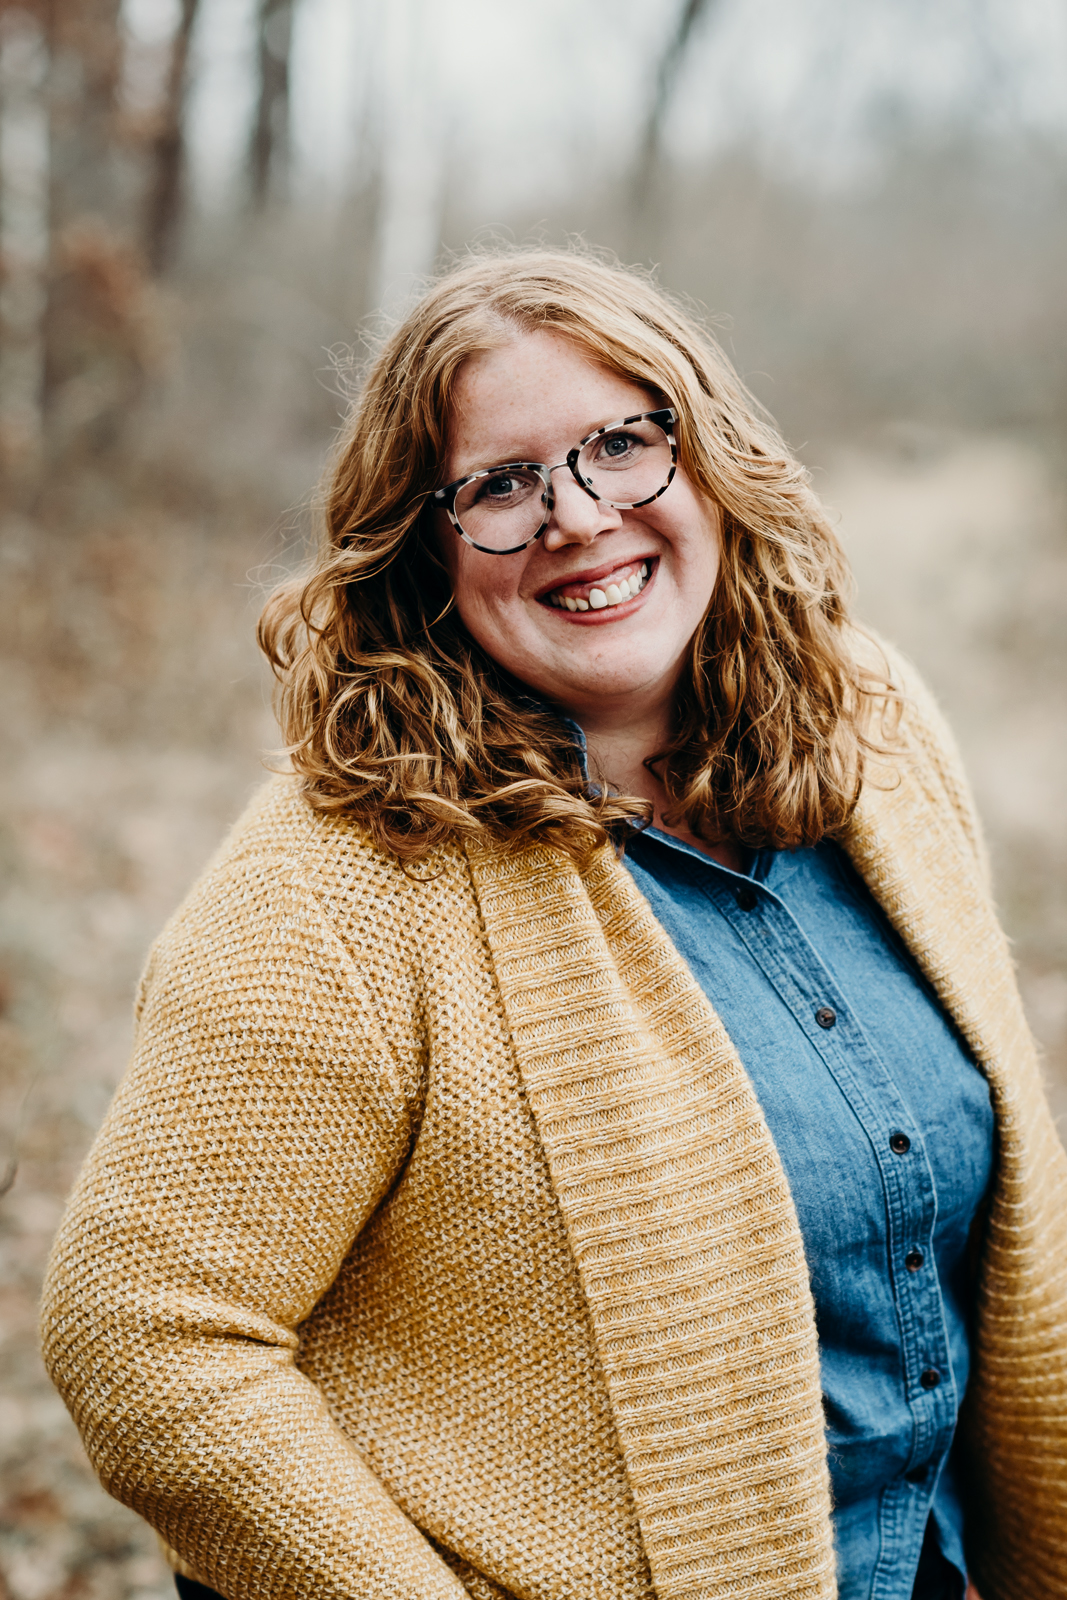 Woman in a mustard colored cardigan and denim shirt smiling.